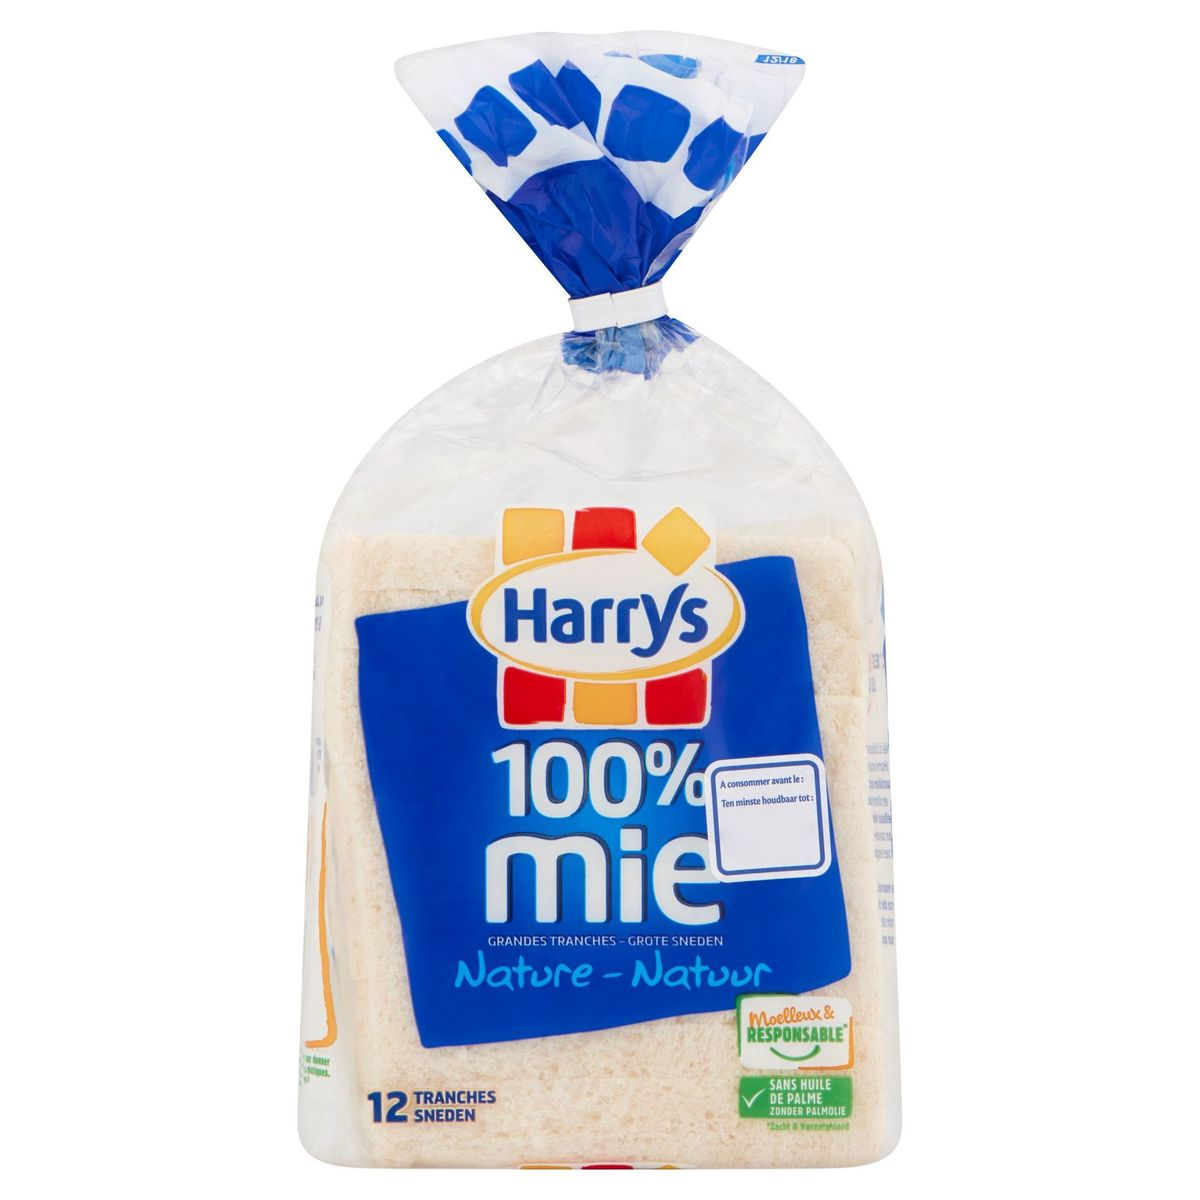 Harrys 100% Mie Nature 12 Tranches 500 g